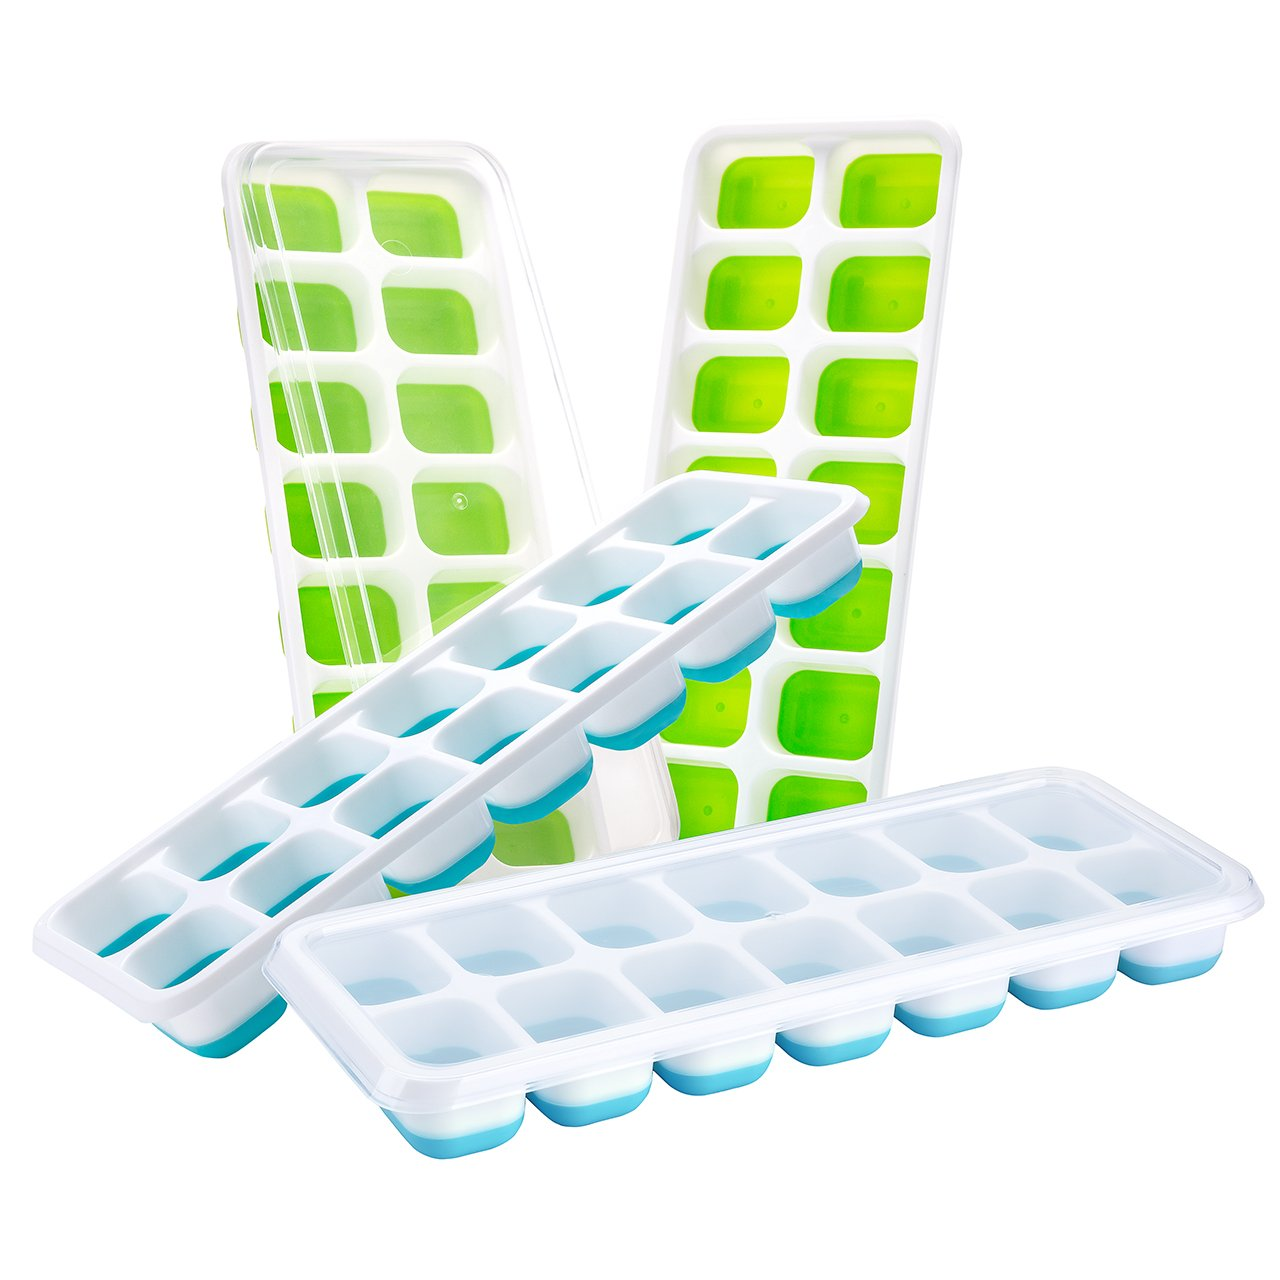 Ice Cube Trays with Lids, TOPELEK Easy Release Silicone Ice Cube Trays with Spill-Resistant Lids, 14-Ice Trays Can Make 56 Ice Cubes, FDA Approved/BPA-free Ice Cube Tray Set for Freezing Baby Food, Cocktails, Whiskey-Dishwasher Safe, (Blue & Green) GEC